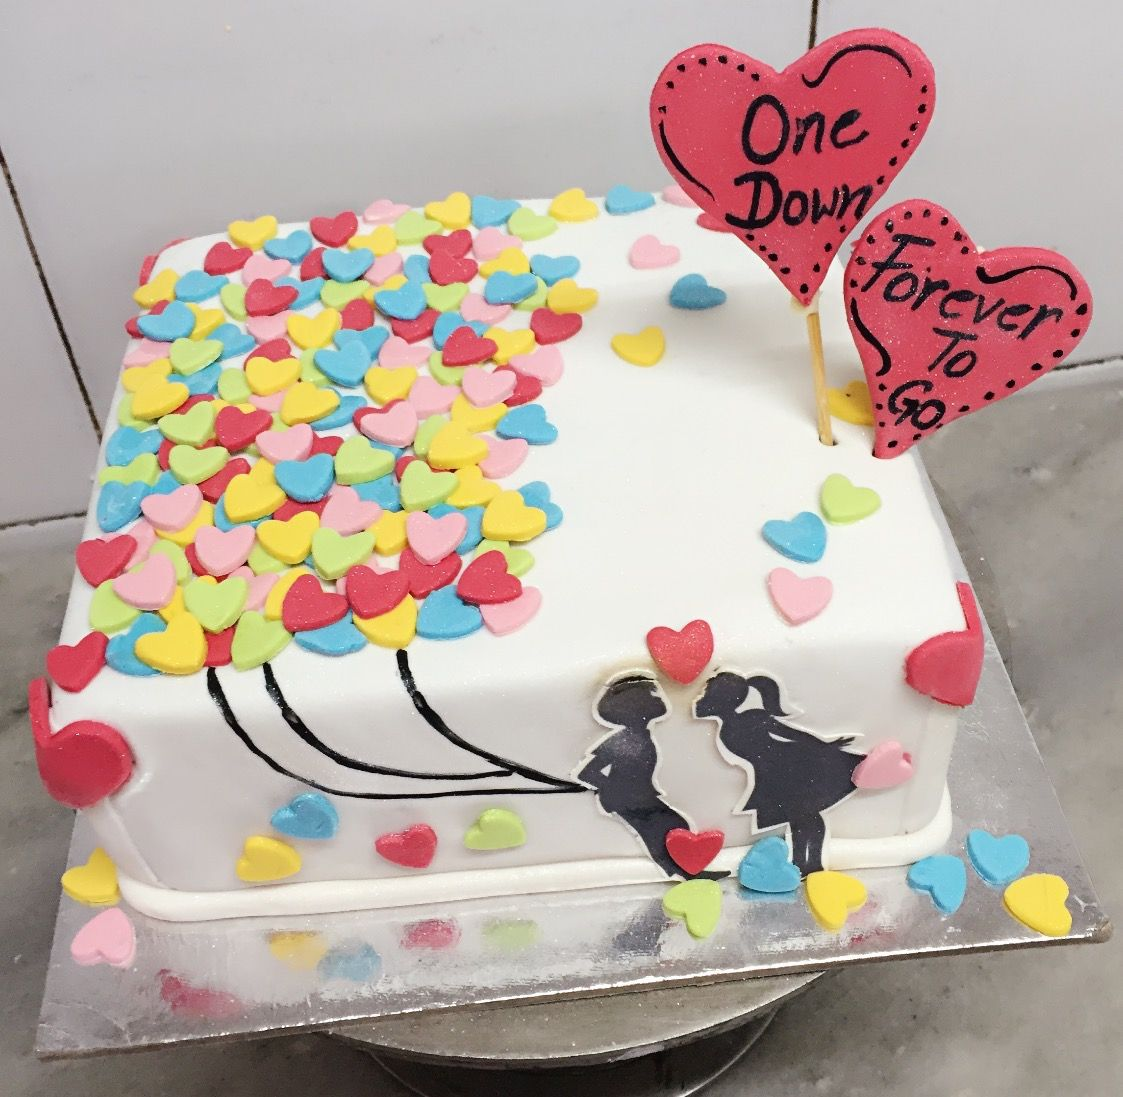 Cute 1st Anniversary Cake Eatoos The Cake Studio Pinterest 1st